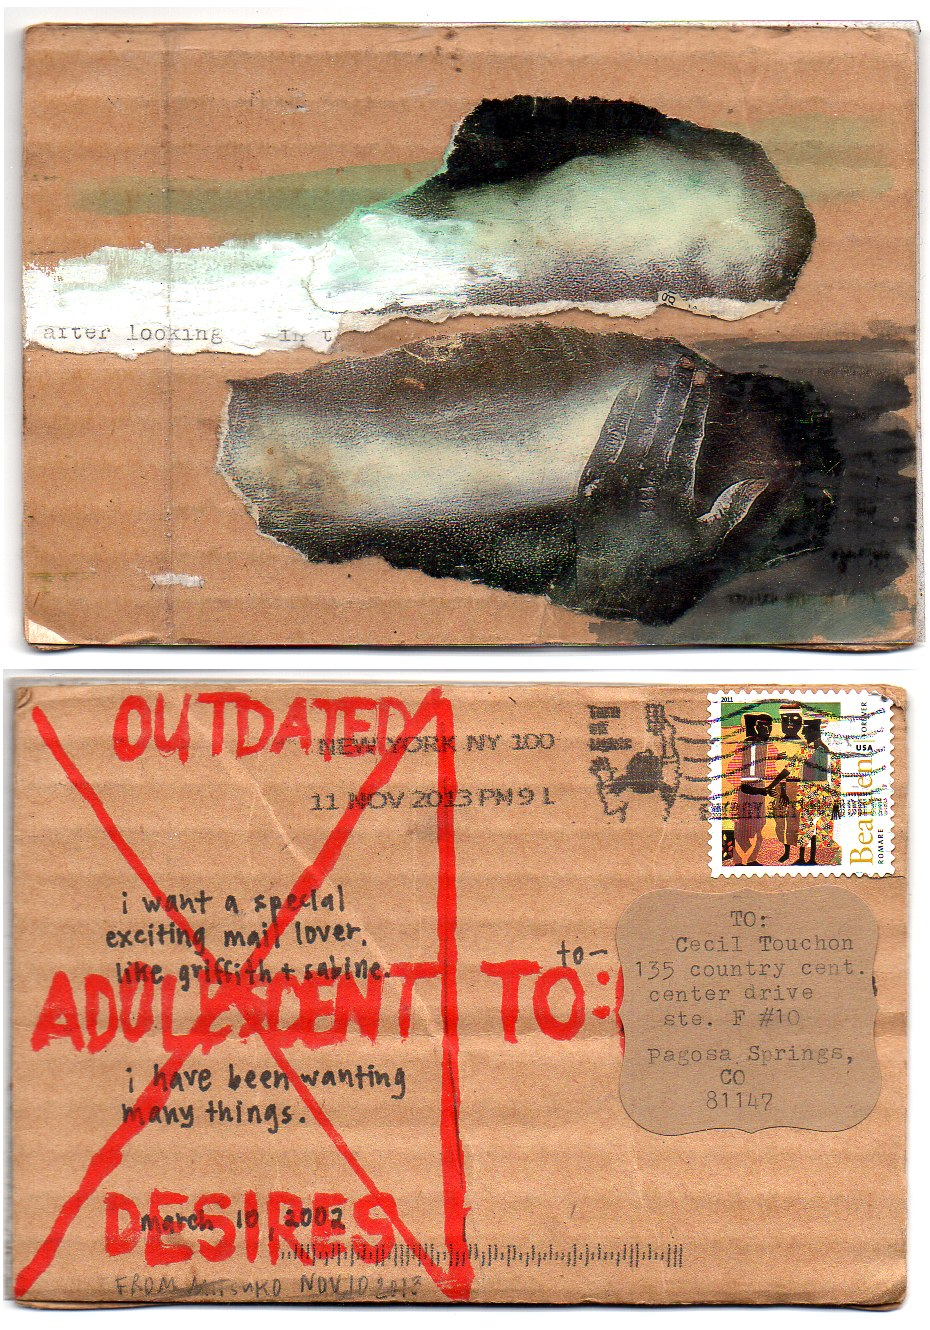 OM.2013.077 | Mitsuko | USA | postcard made of cardboard with collage elements